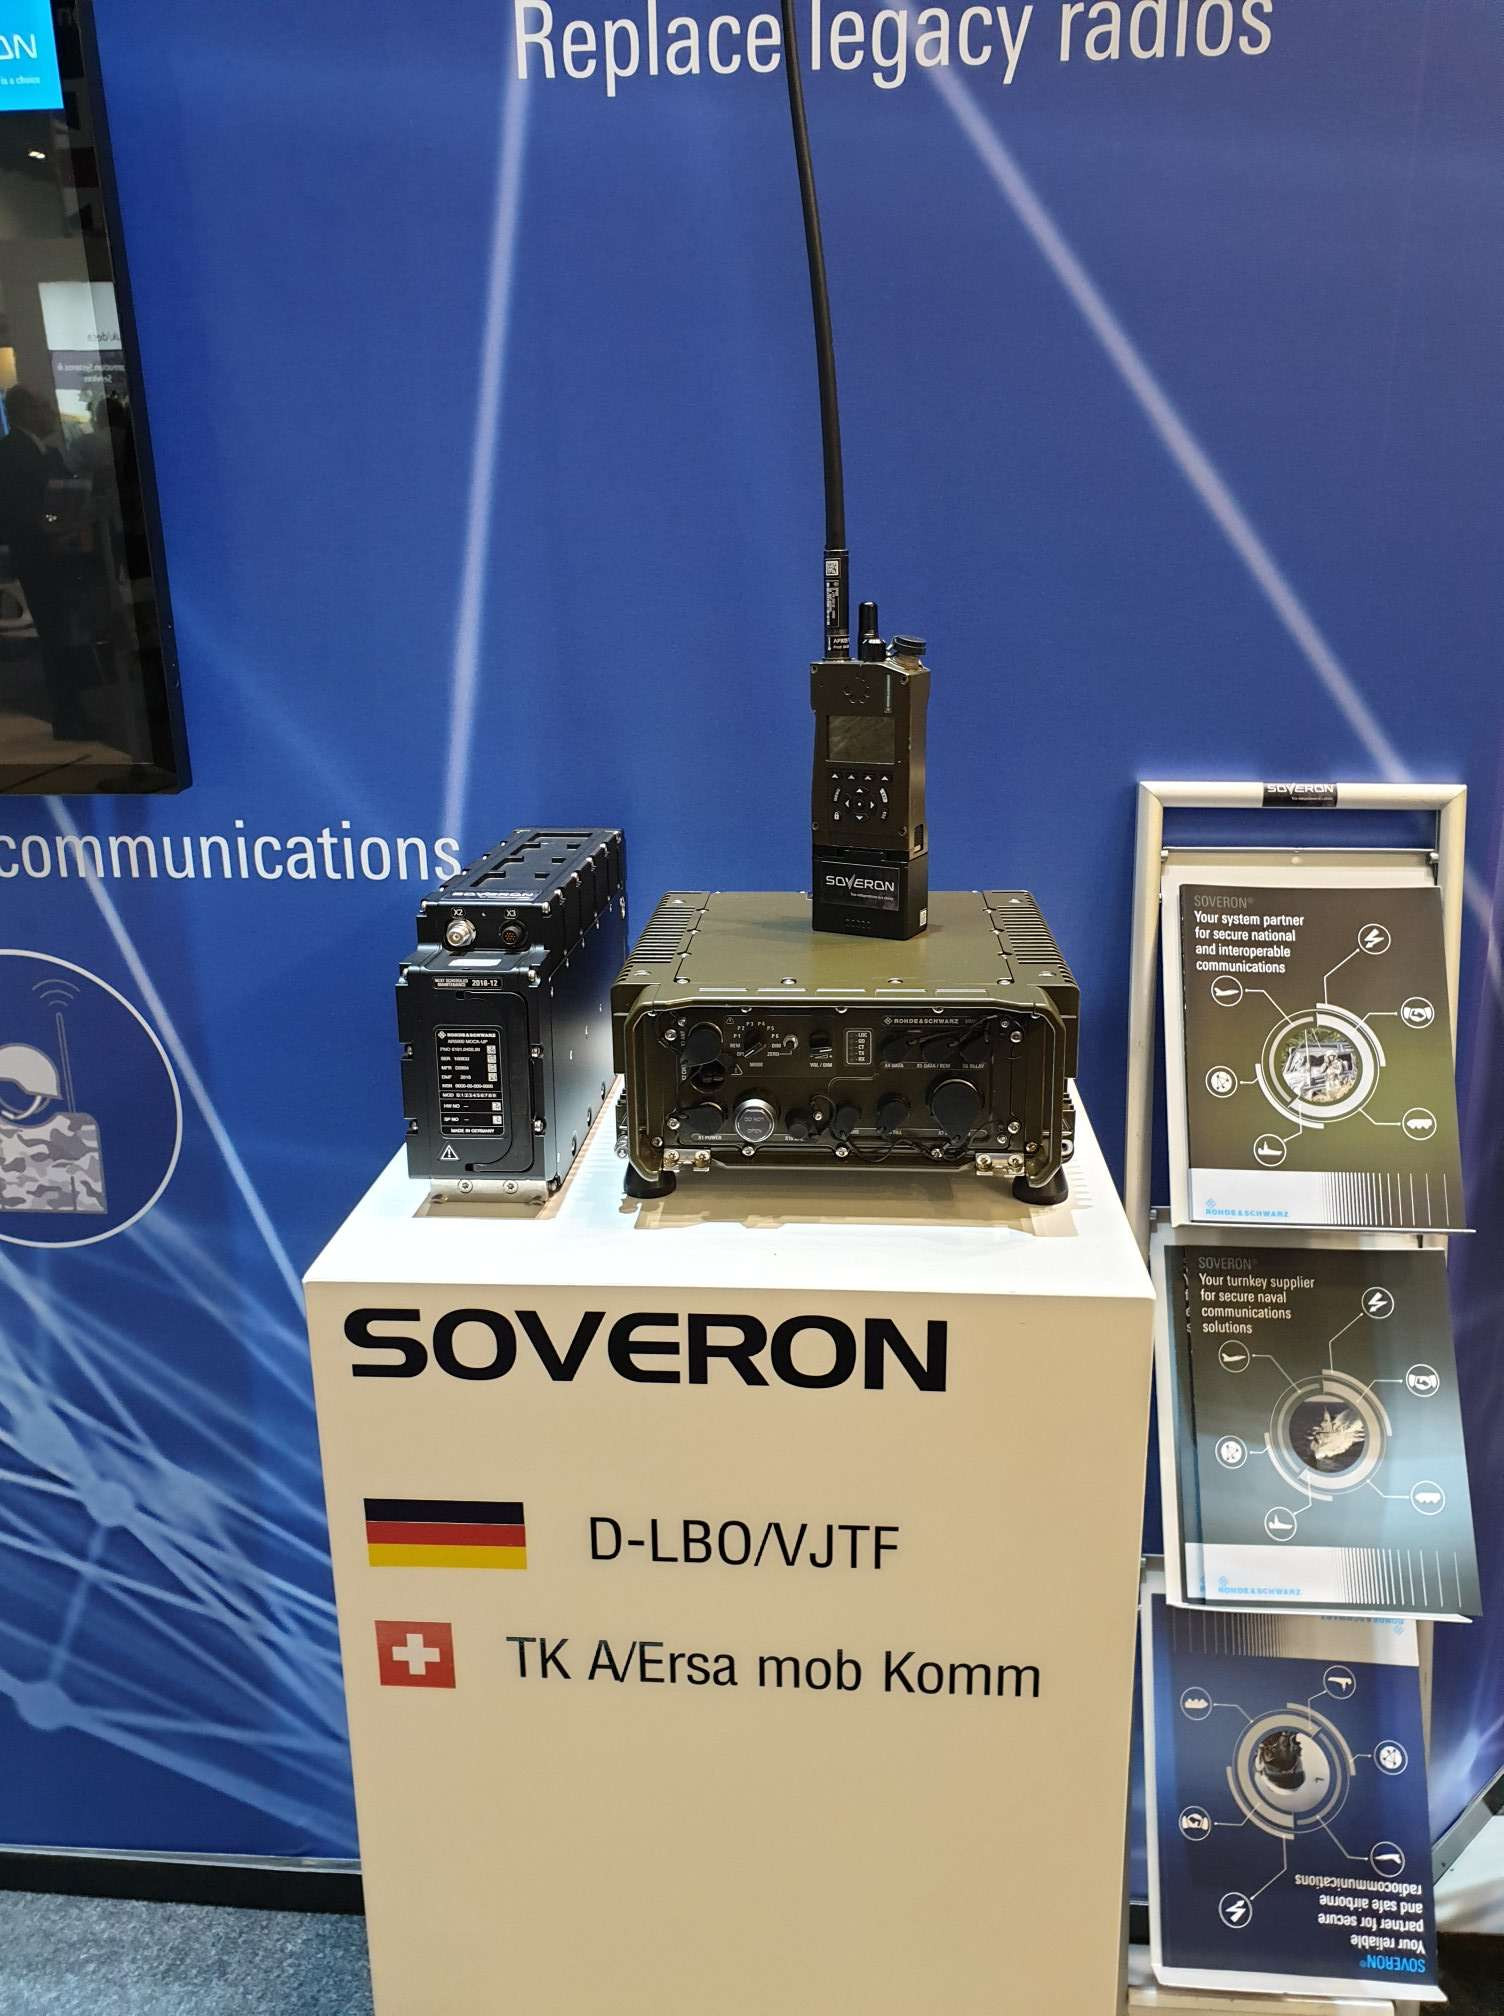 SOVERON Tactical Radios Rohde Schwarz DSEI 2019 London Image 2